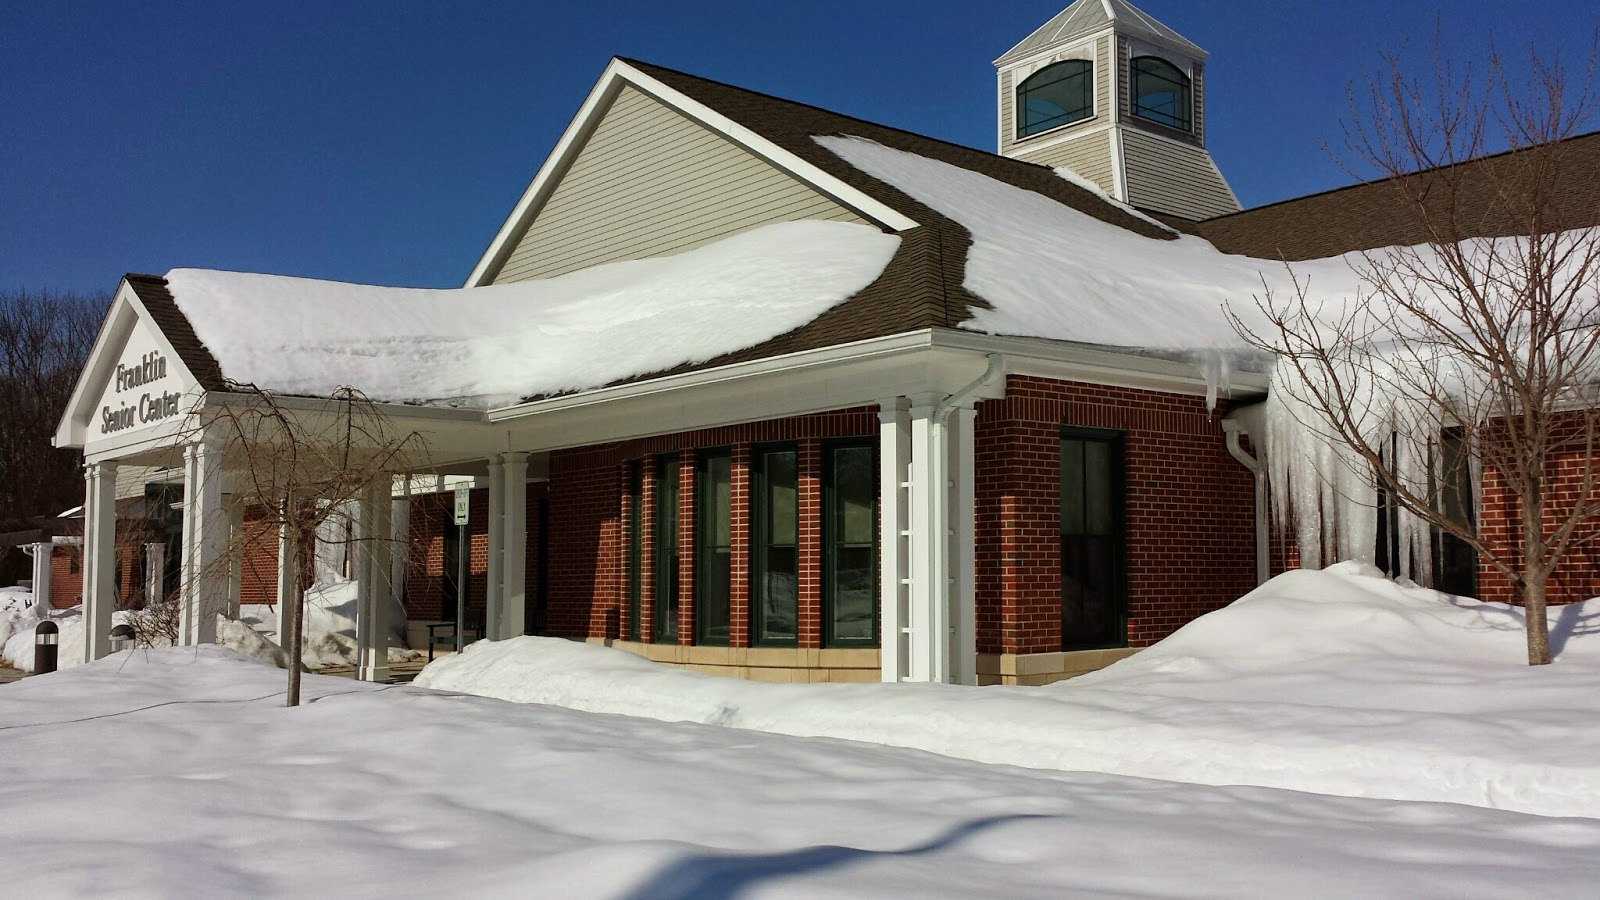 Franklin Senior Center - how much snow will have melted by April 1?